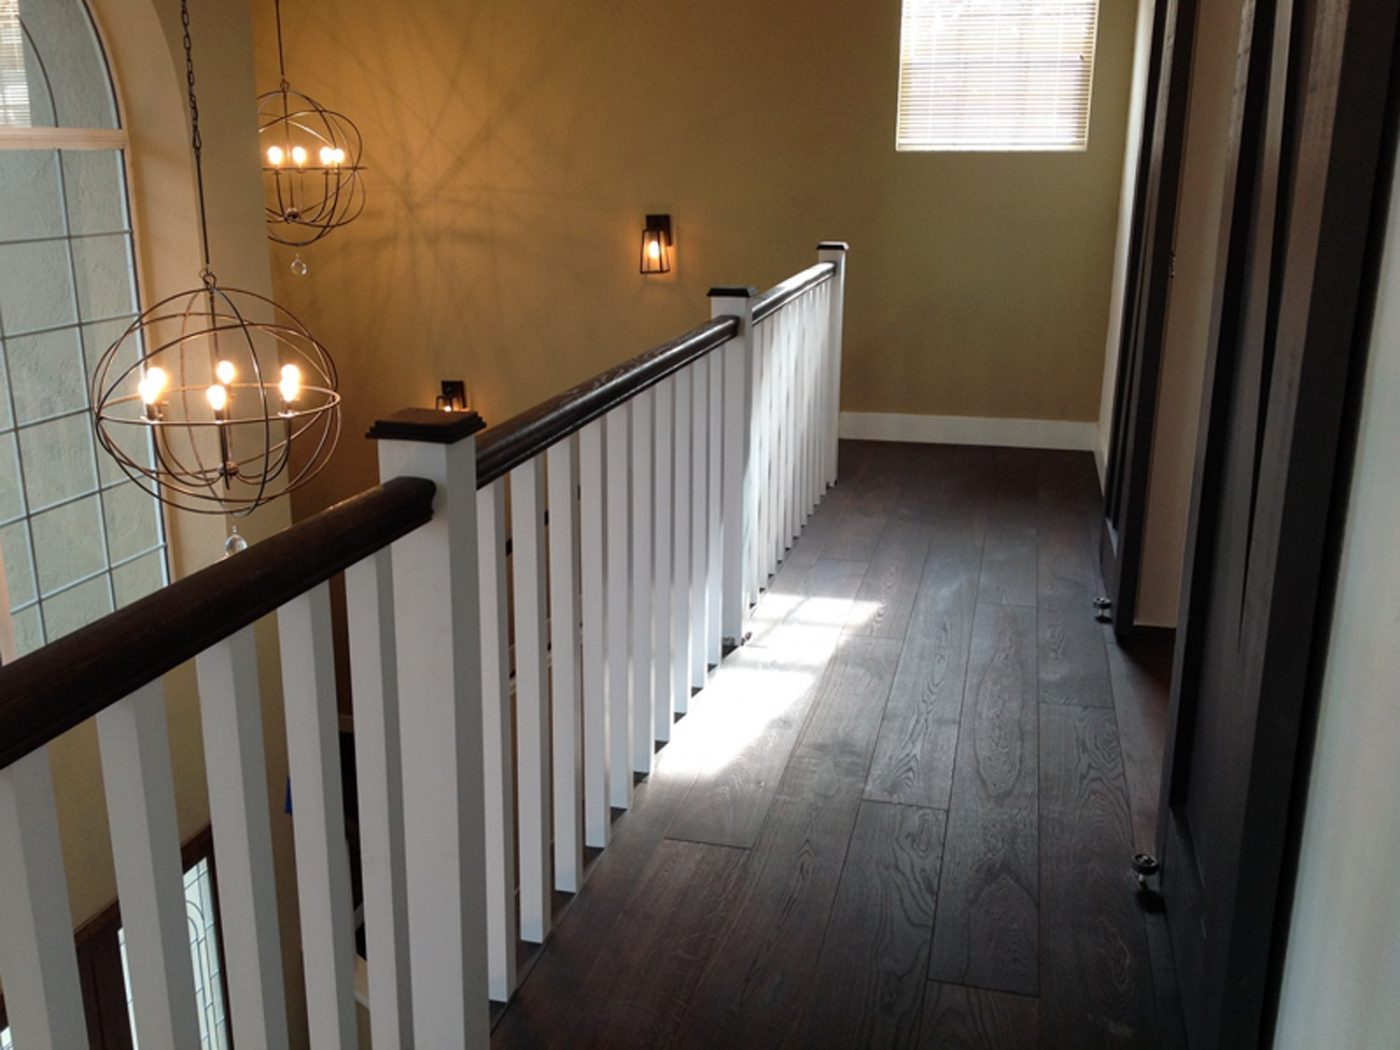 New wood floors, barn doors, railing, and pendant lights!